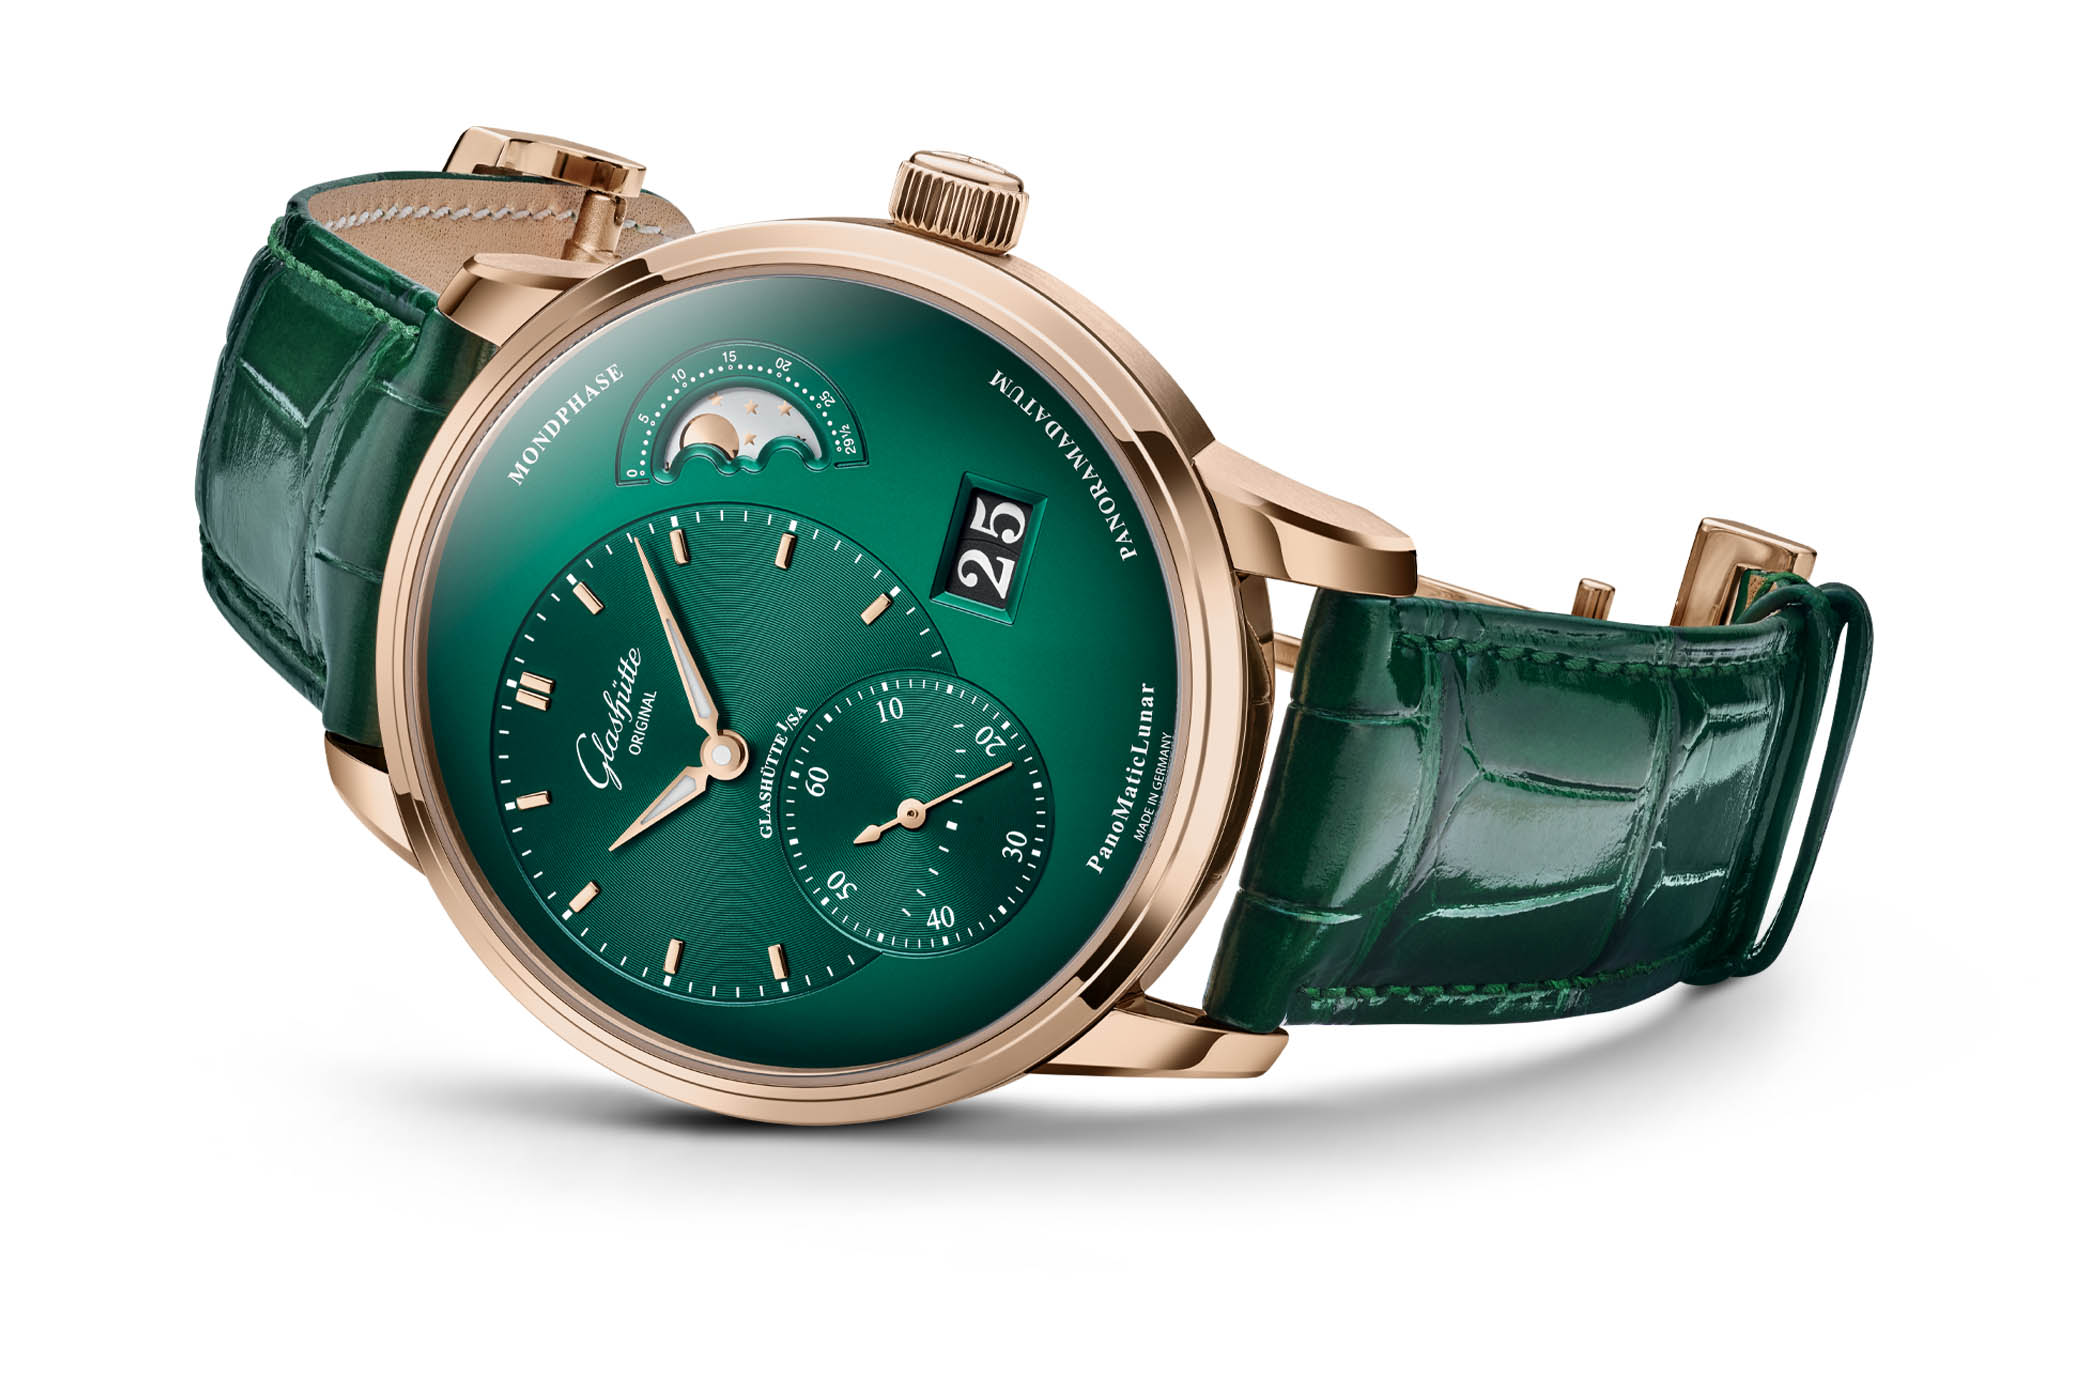 Glashutte Original PanoMaticLunar Red Gold and Green Dial